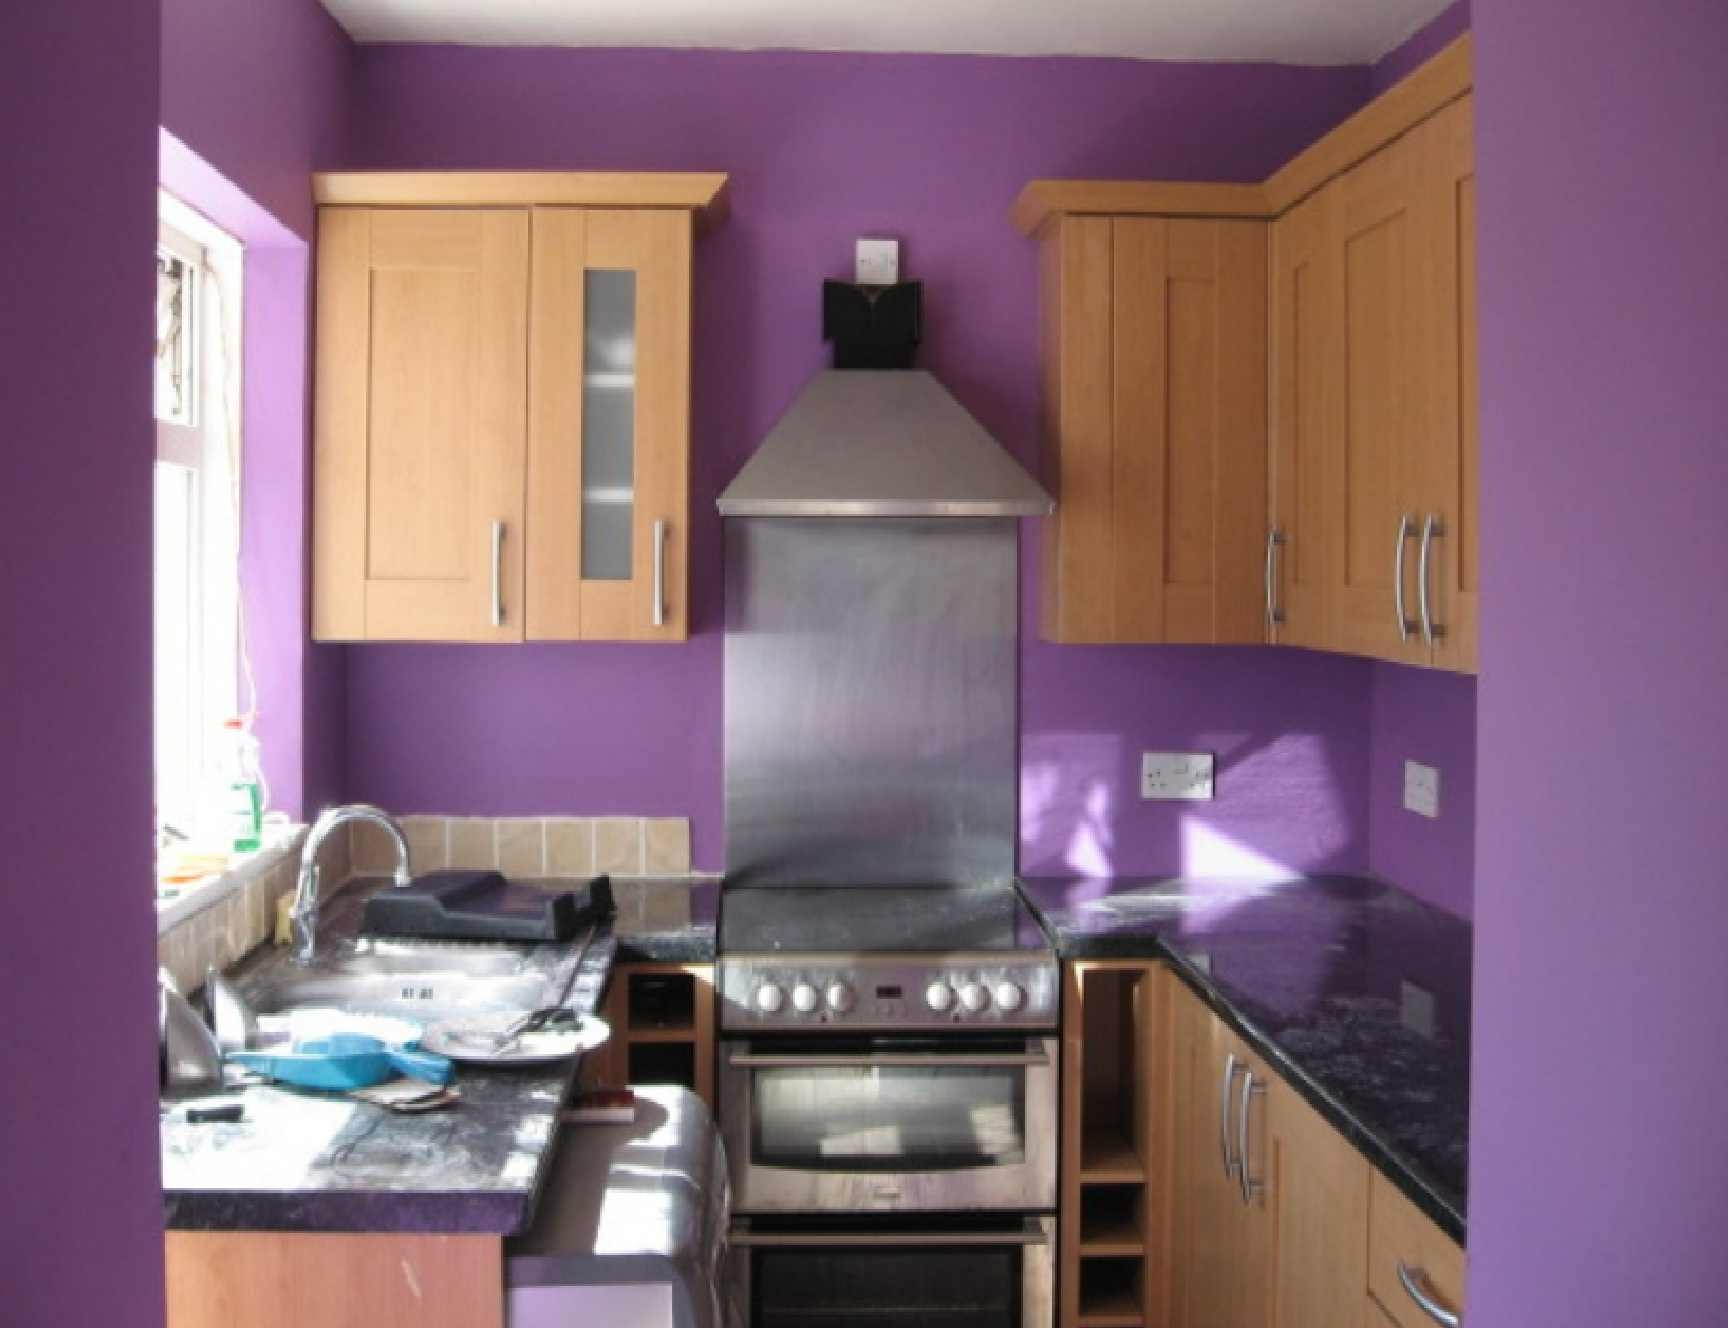 Managing Purple Kitchen Theme How To Do It Properly